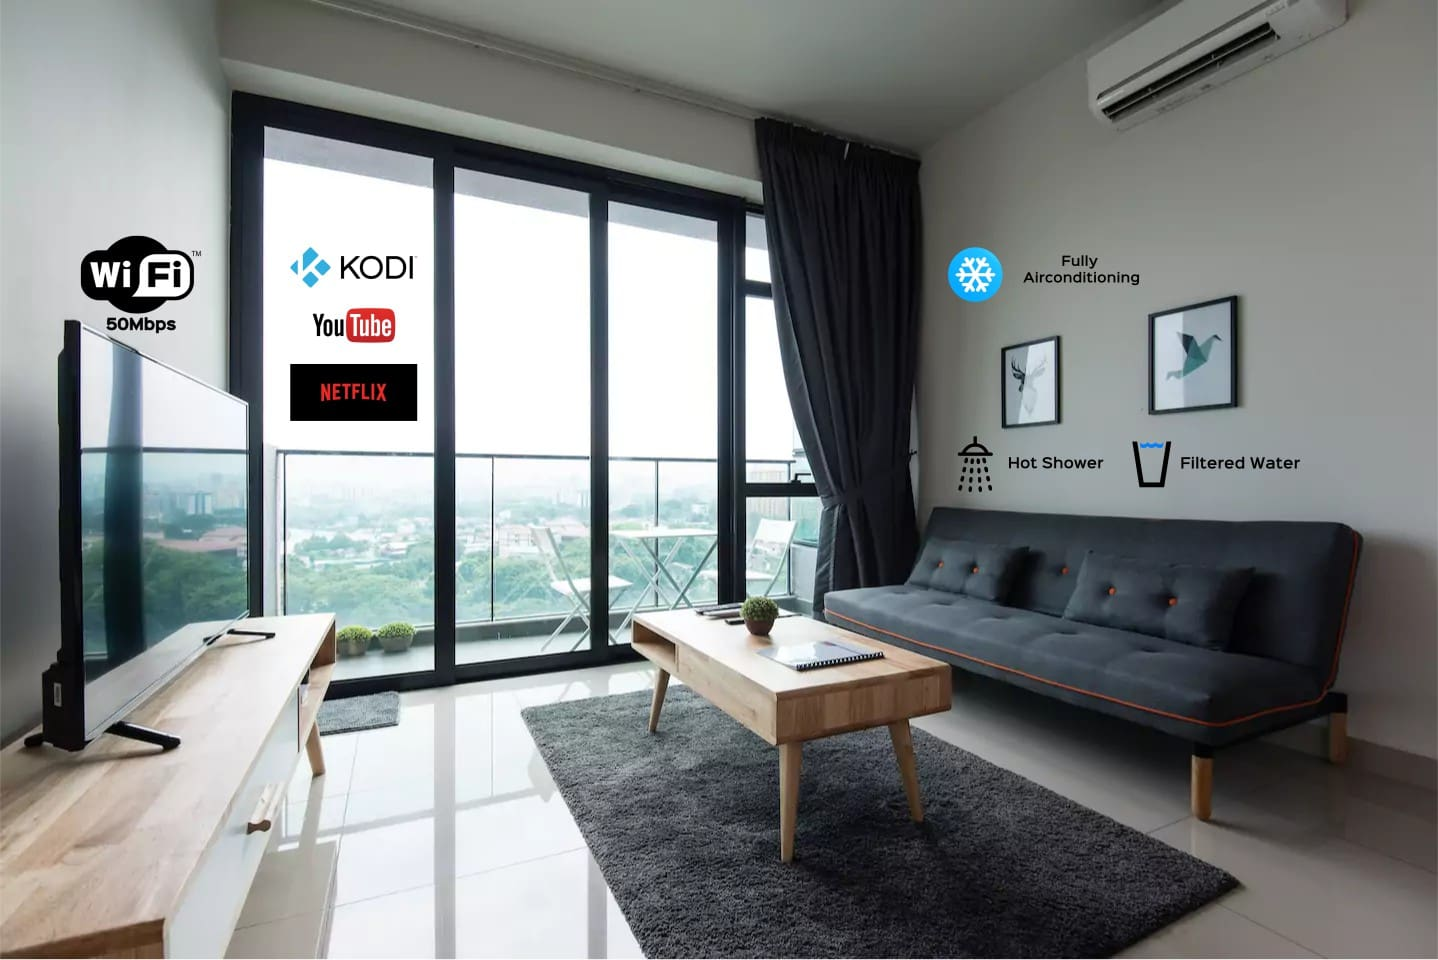 5 stars amenities with KLCC view.